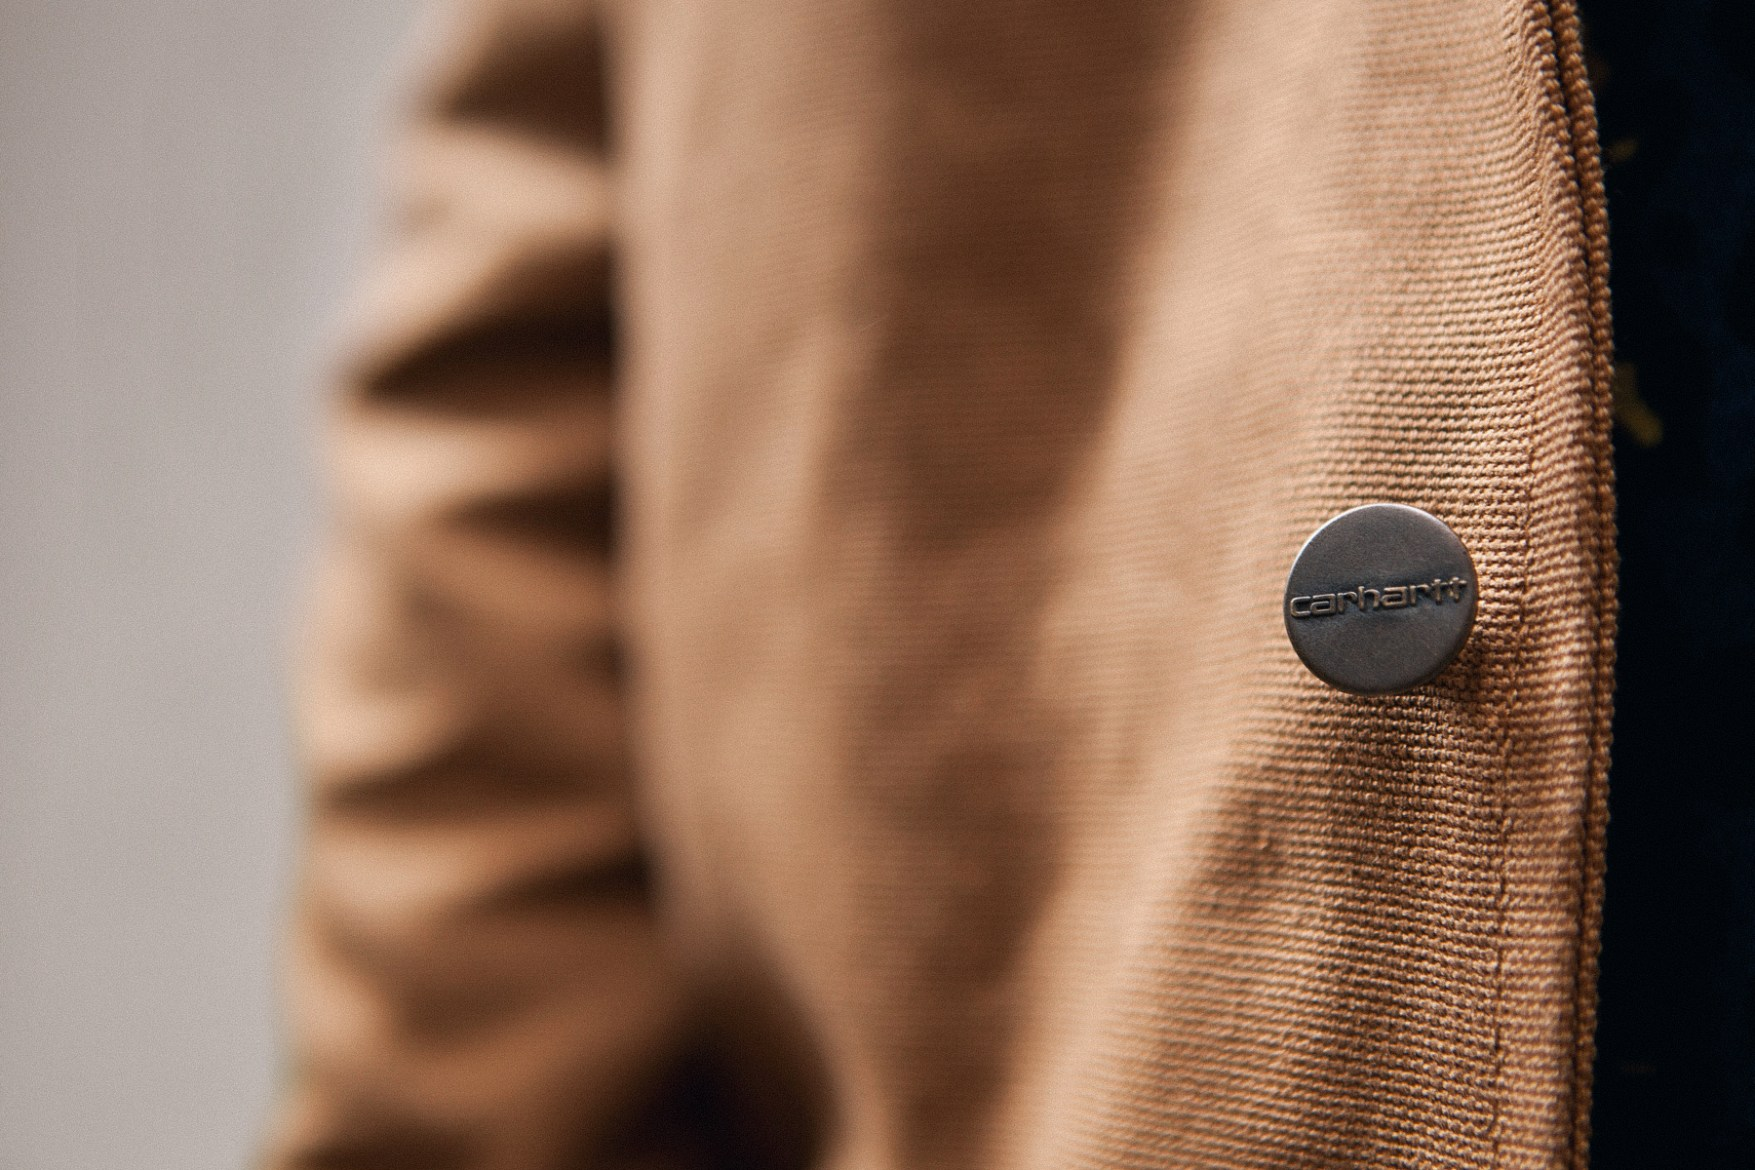 Carhartt WIP 2014 Fall/Winter Collection